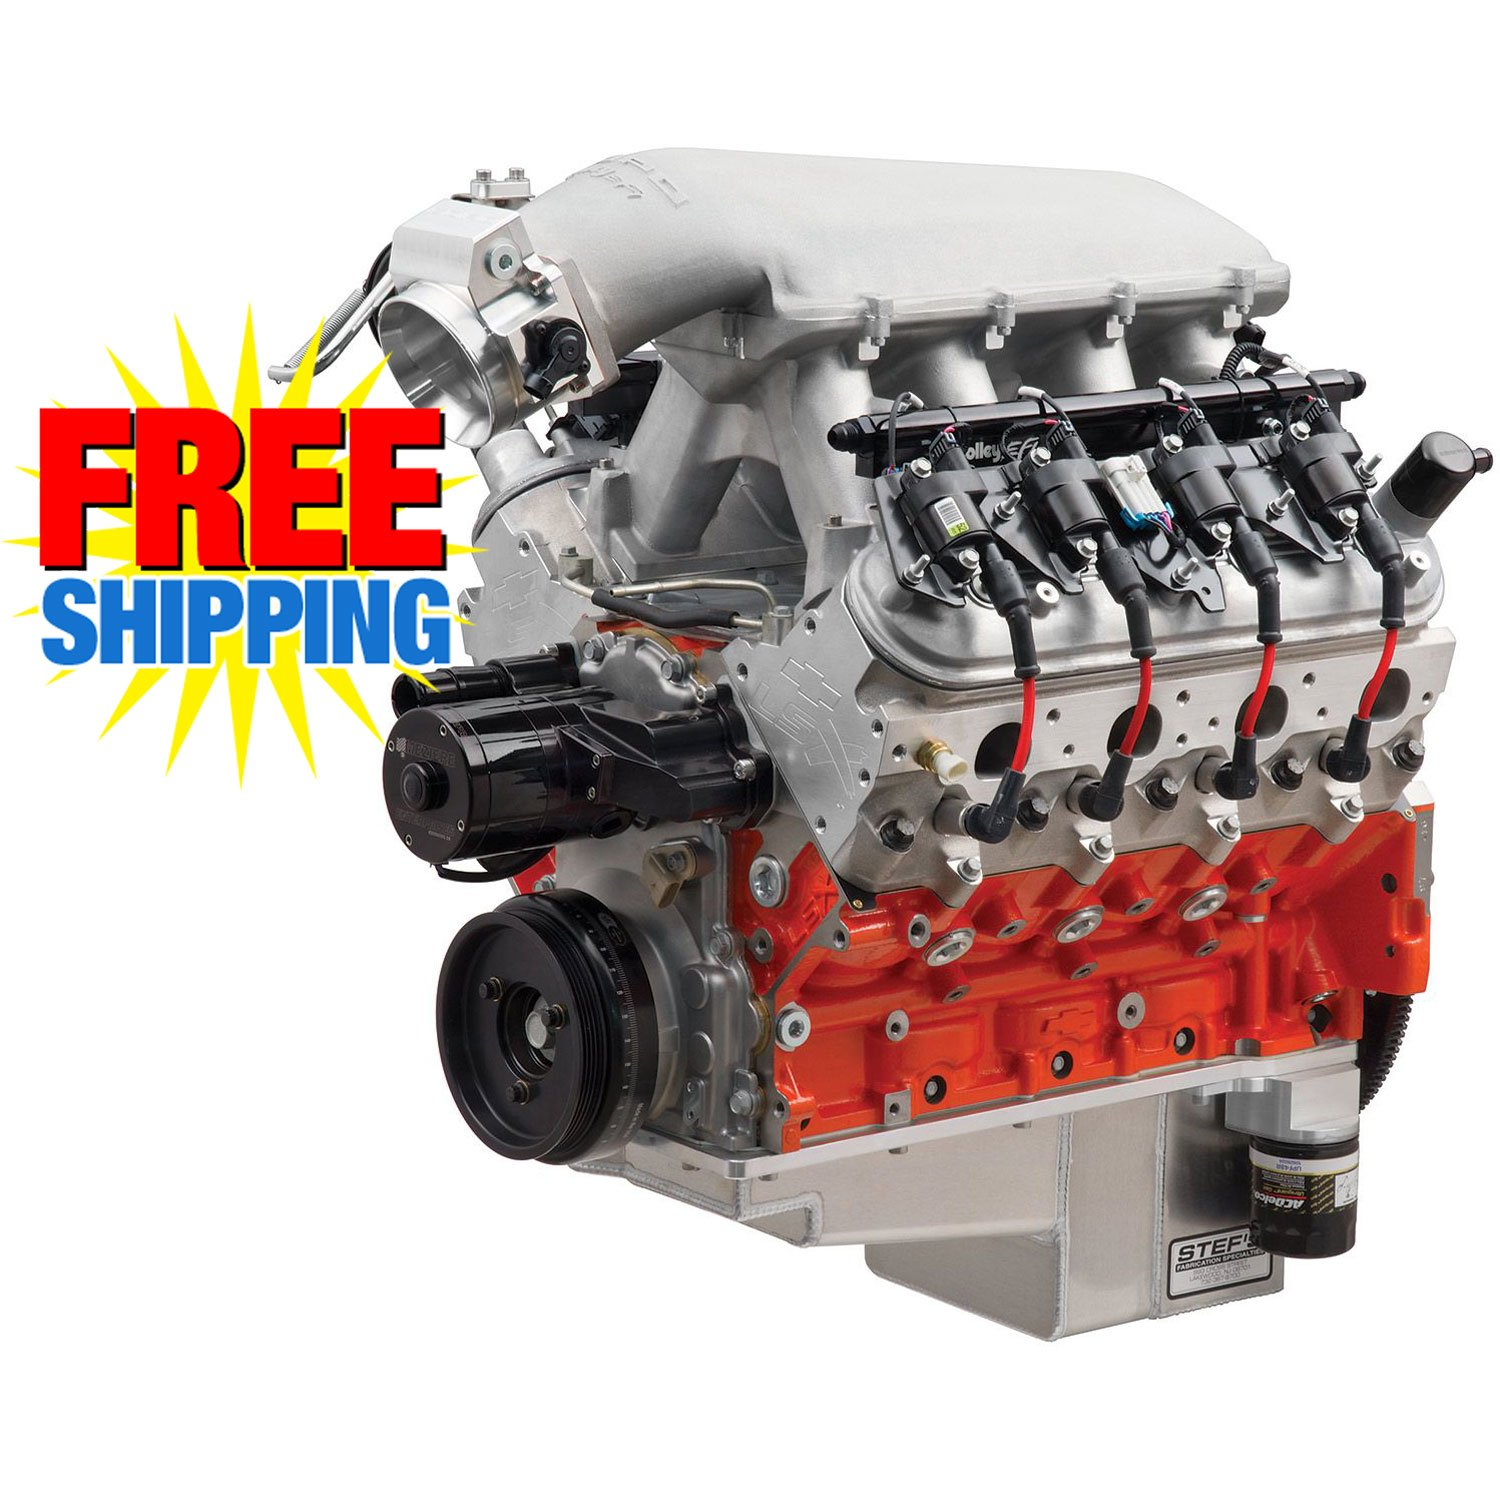 Chevy 2016 2017 427ci 470hp COPO Crate Engine